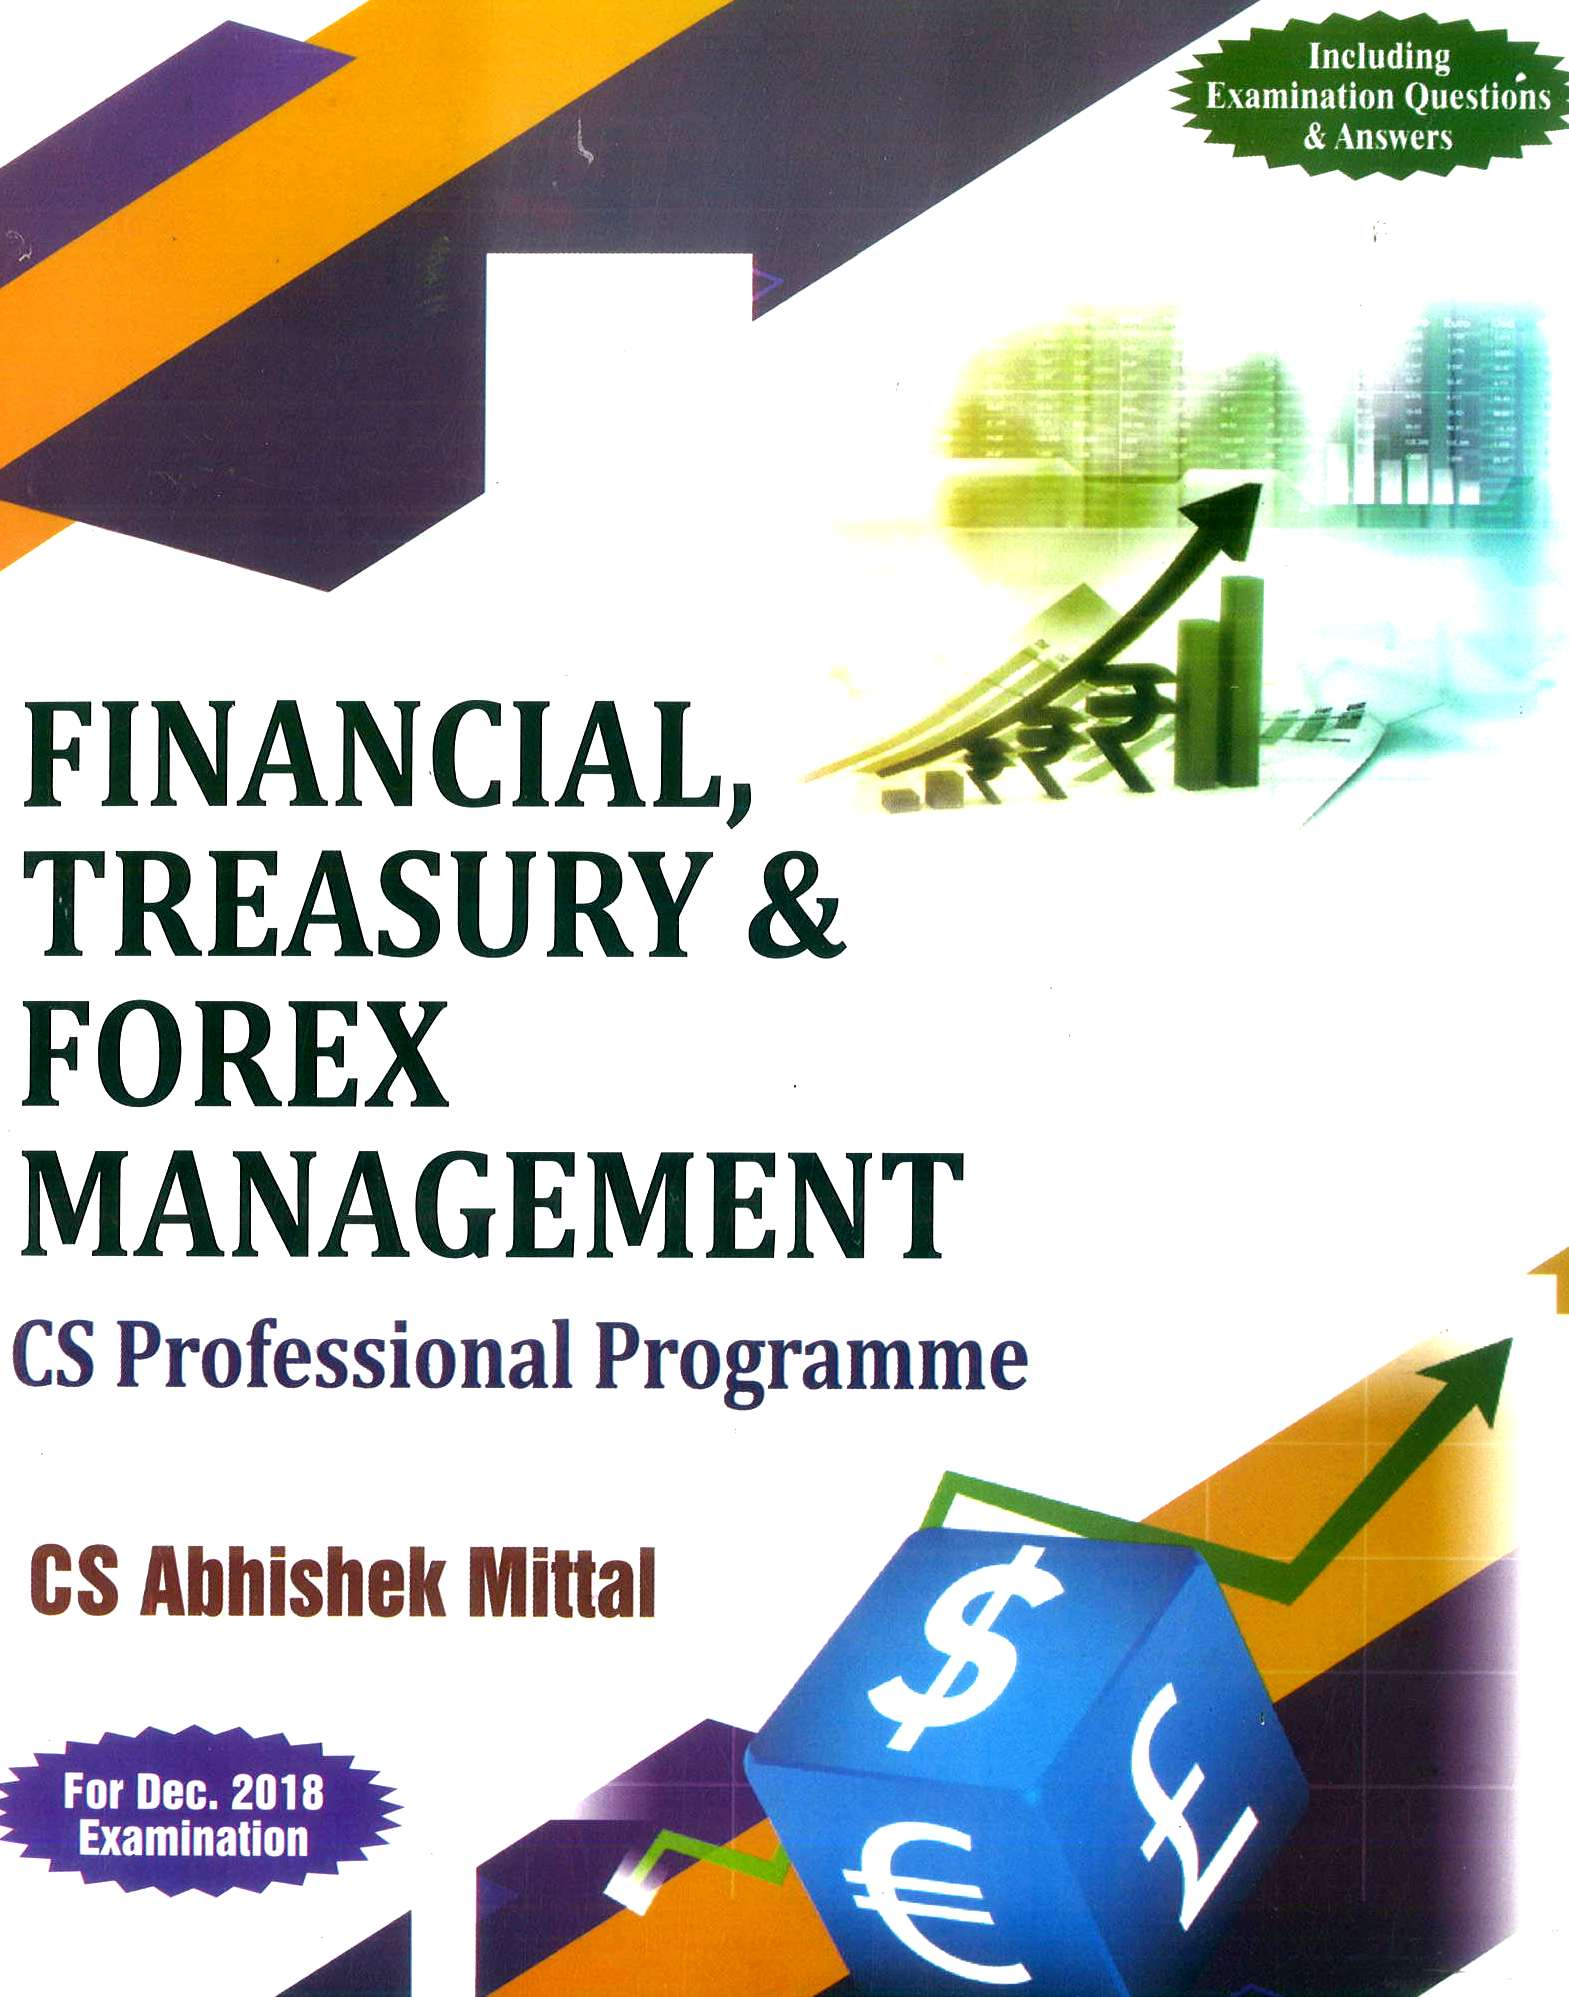 Sangeet Kedia Financial, Treasury & Forex Management for Dec 2018 Exam for CS Professional Programme by Abhishek Mittal (Pooja Law House Publishing) Edition 2018